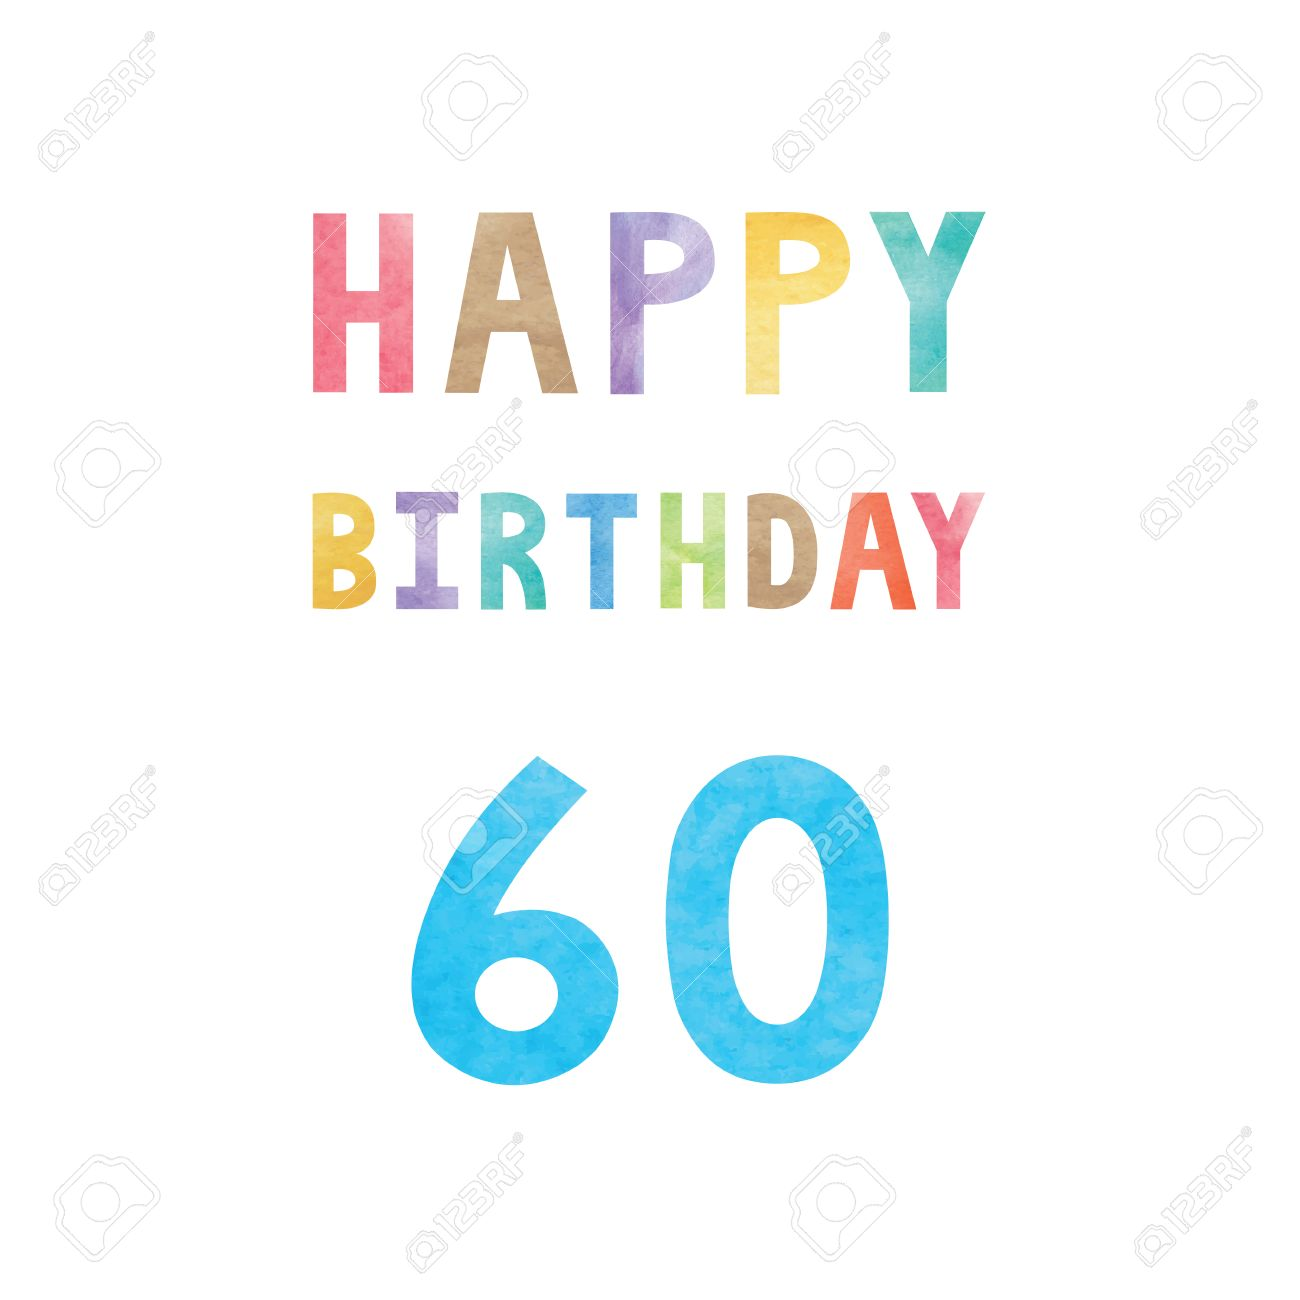 Happy 60th Birthday Anniversary Card With Colorful Watercolor Text On White Background Stock Vector